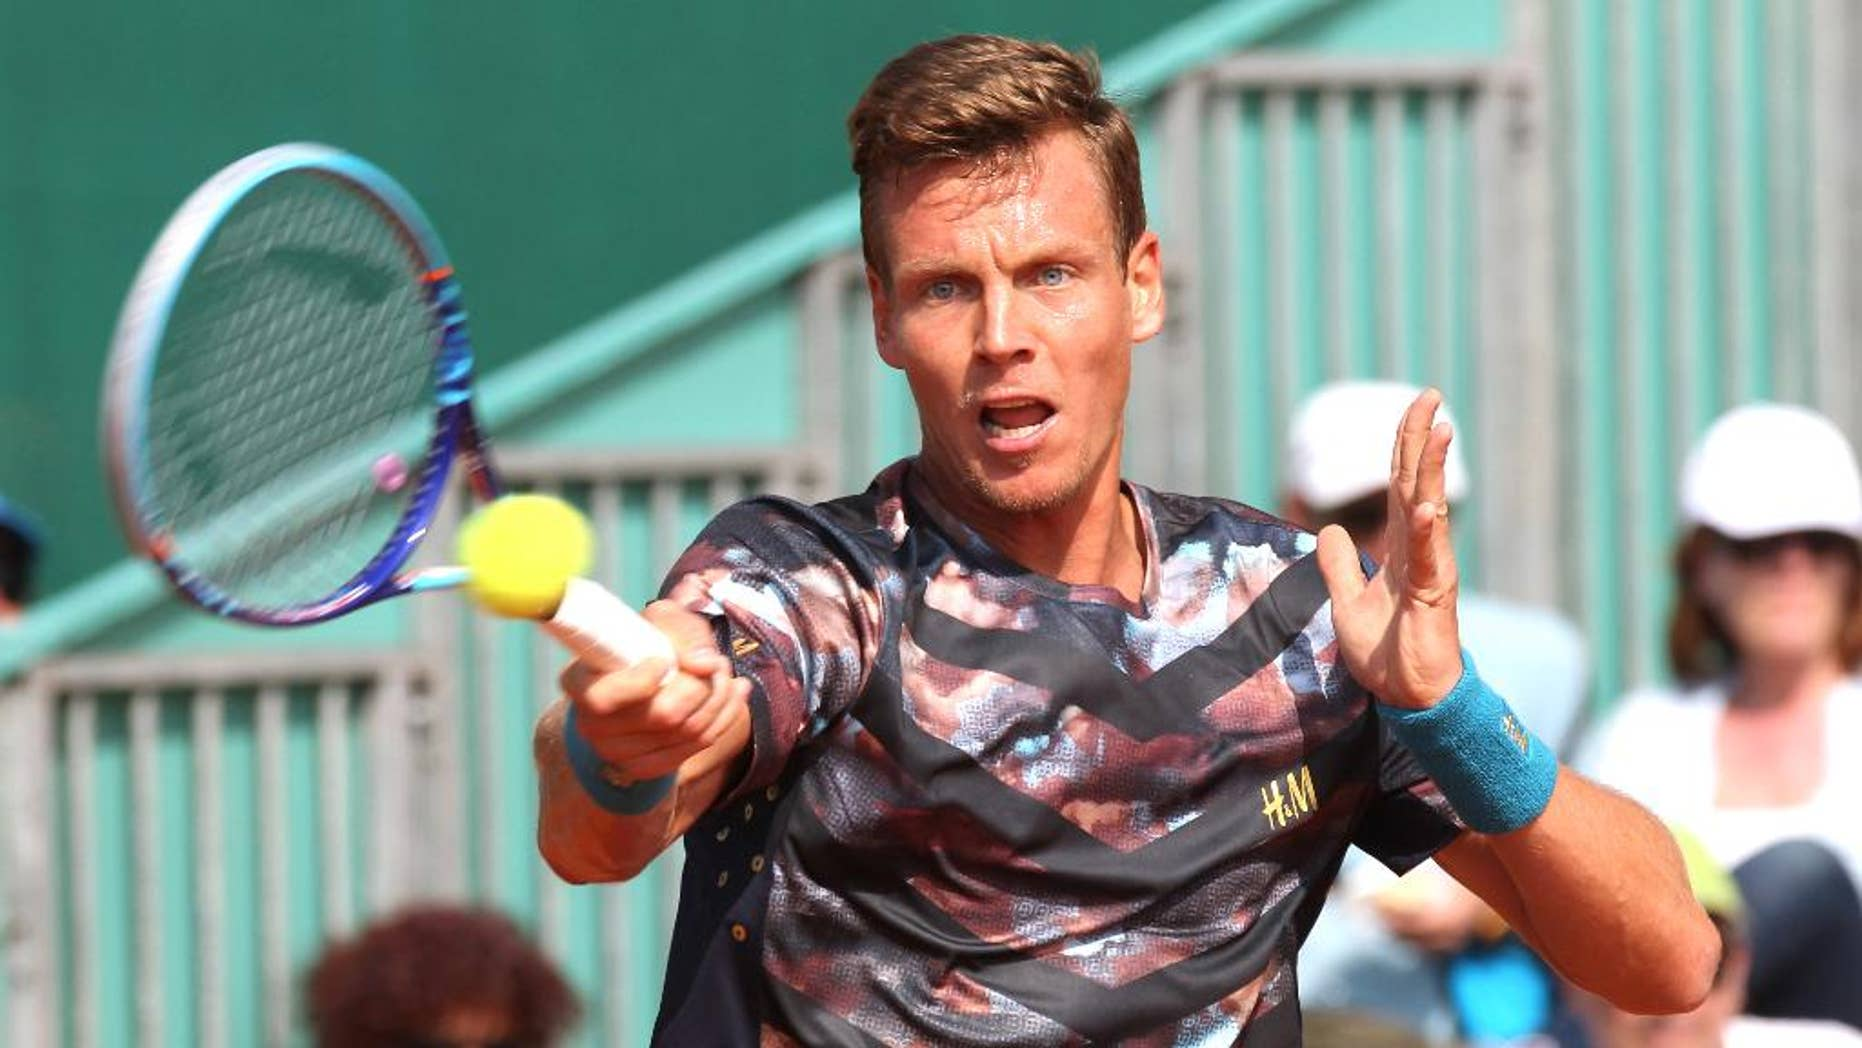 Thomas Berdych of Czech Republic plays a return to Ukrainian Sergiy Stakhovsky during their match of the Monte Carlo Tennis Masters tournament in Monaco, Wednesday, April 15, 2015. (AP Photo/Lionel Cironneau)